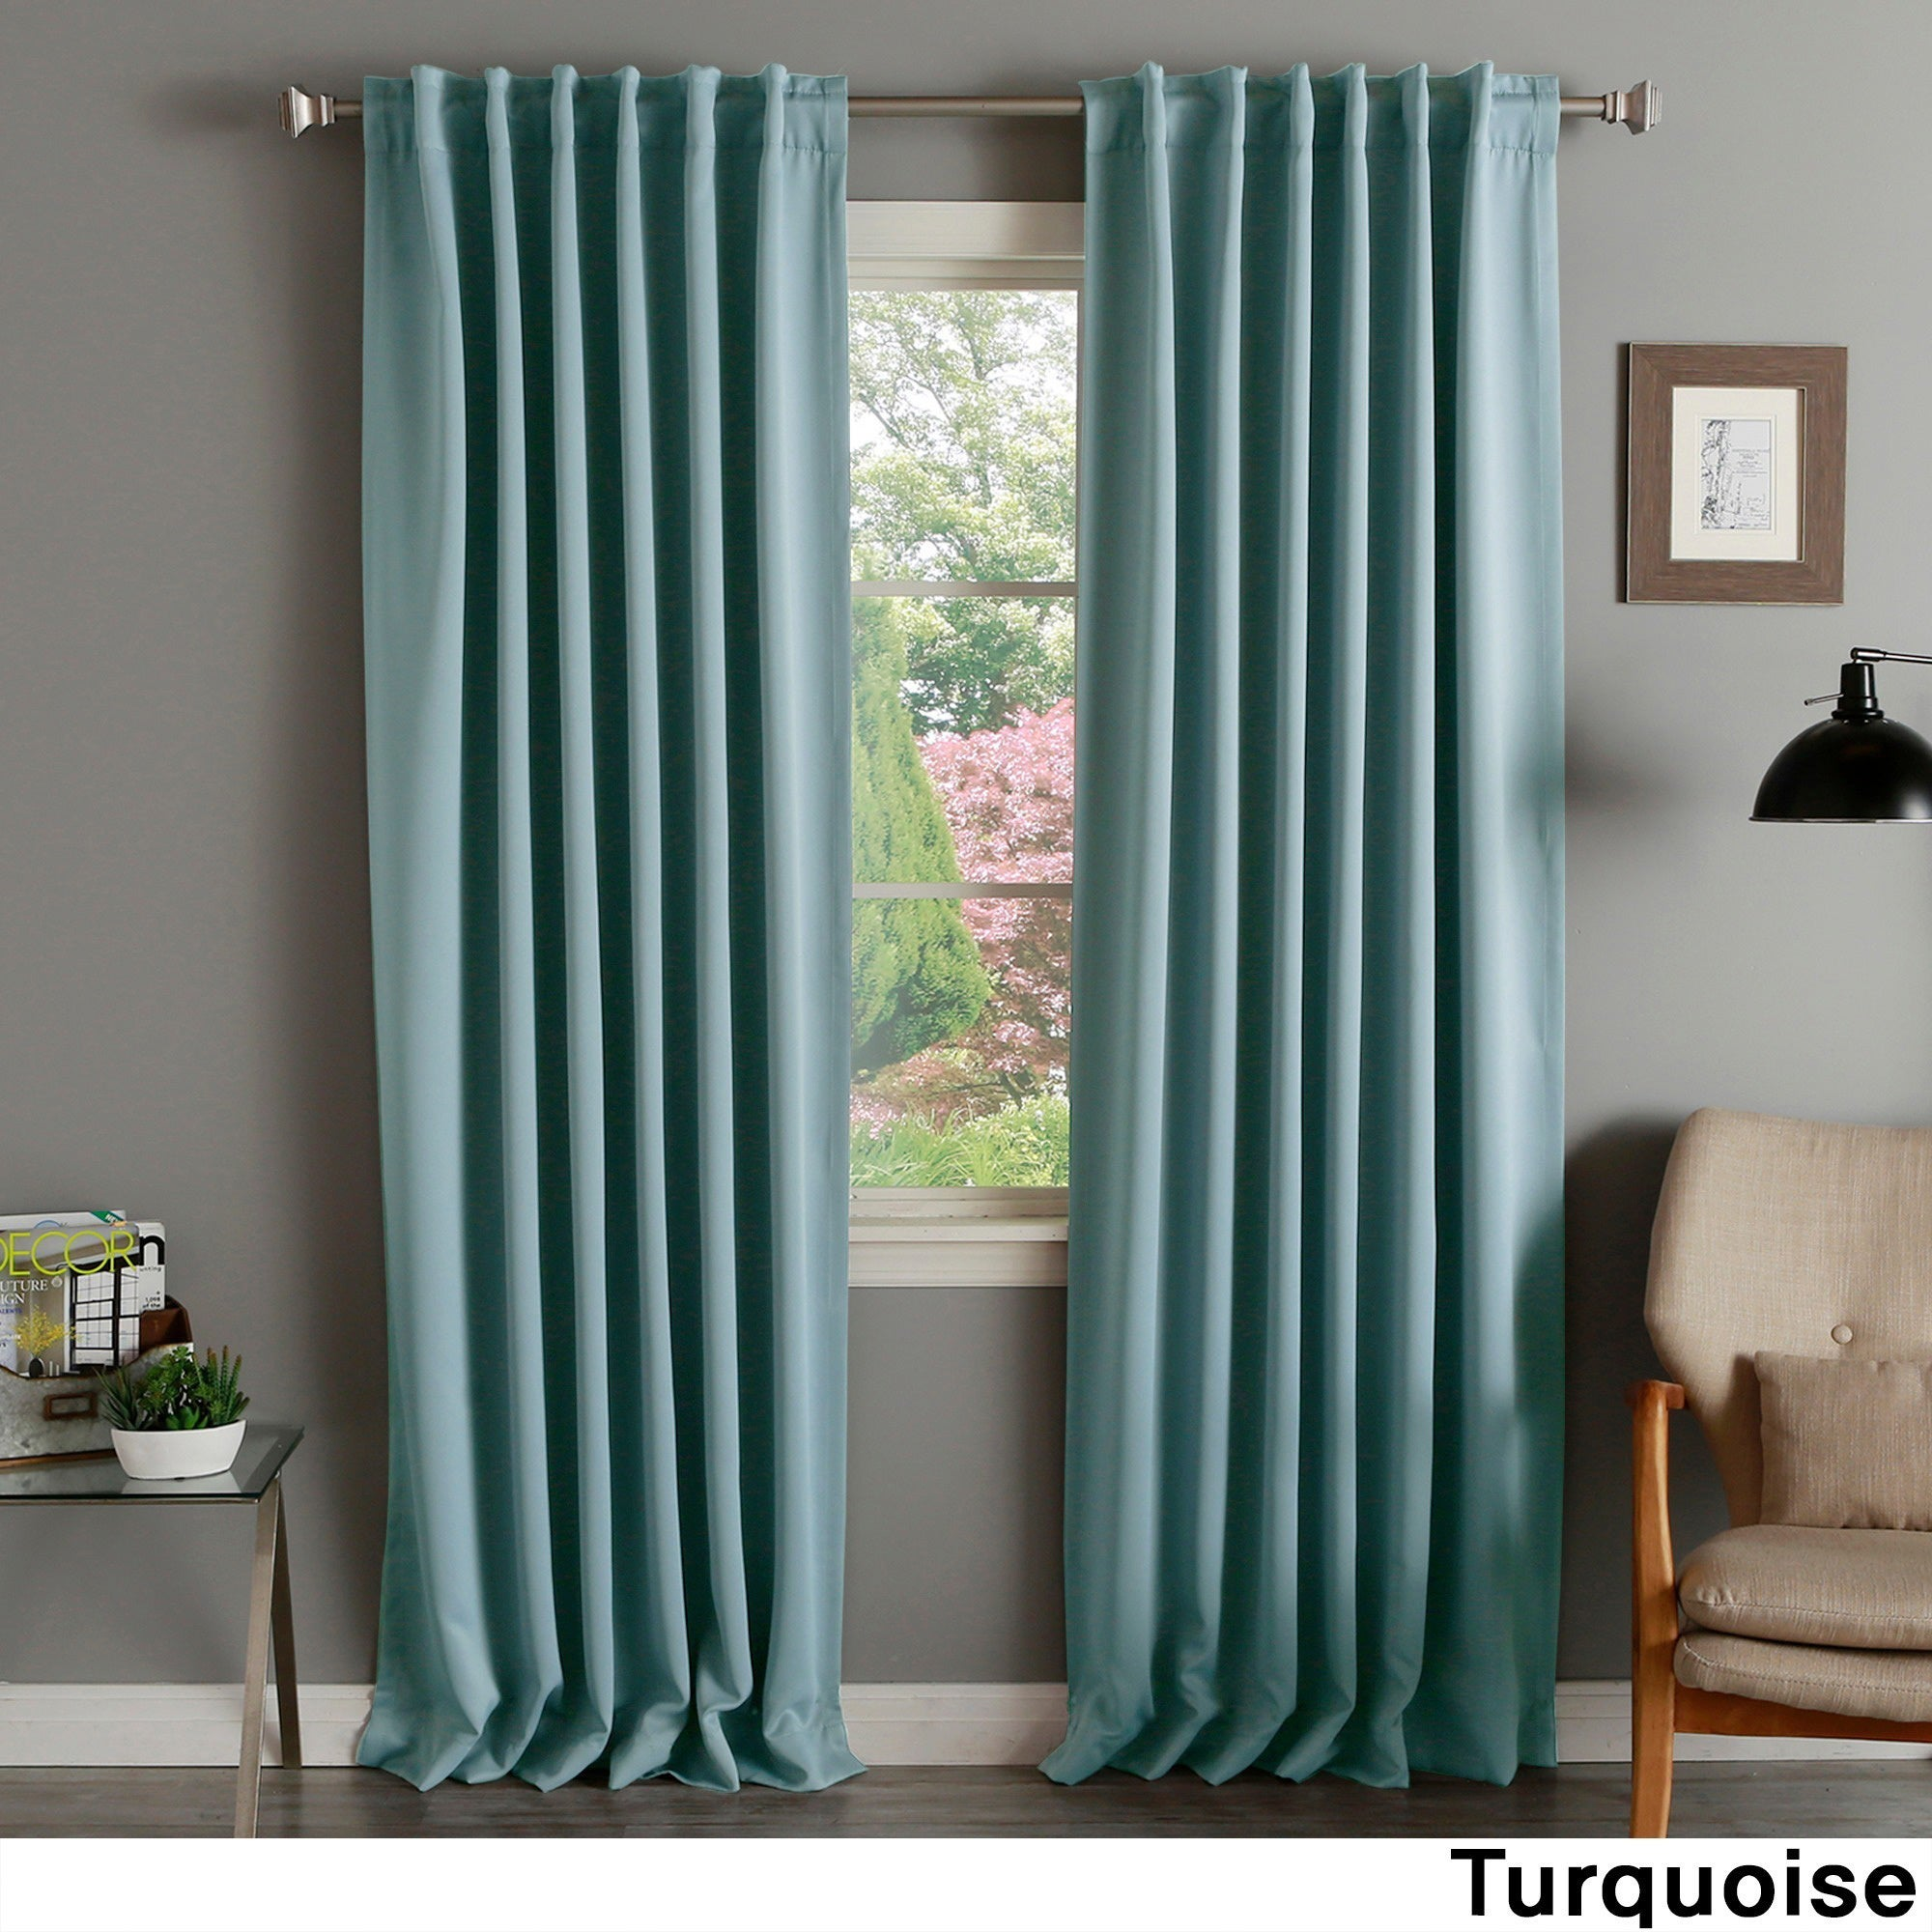 curtains zi c home care personal turquoise curtain multi rings shower dillards bath